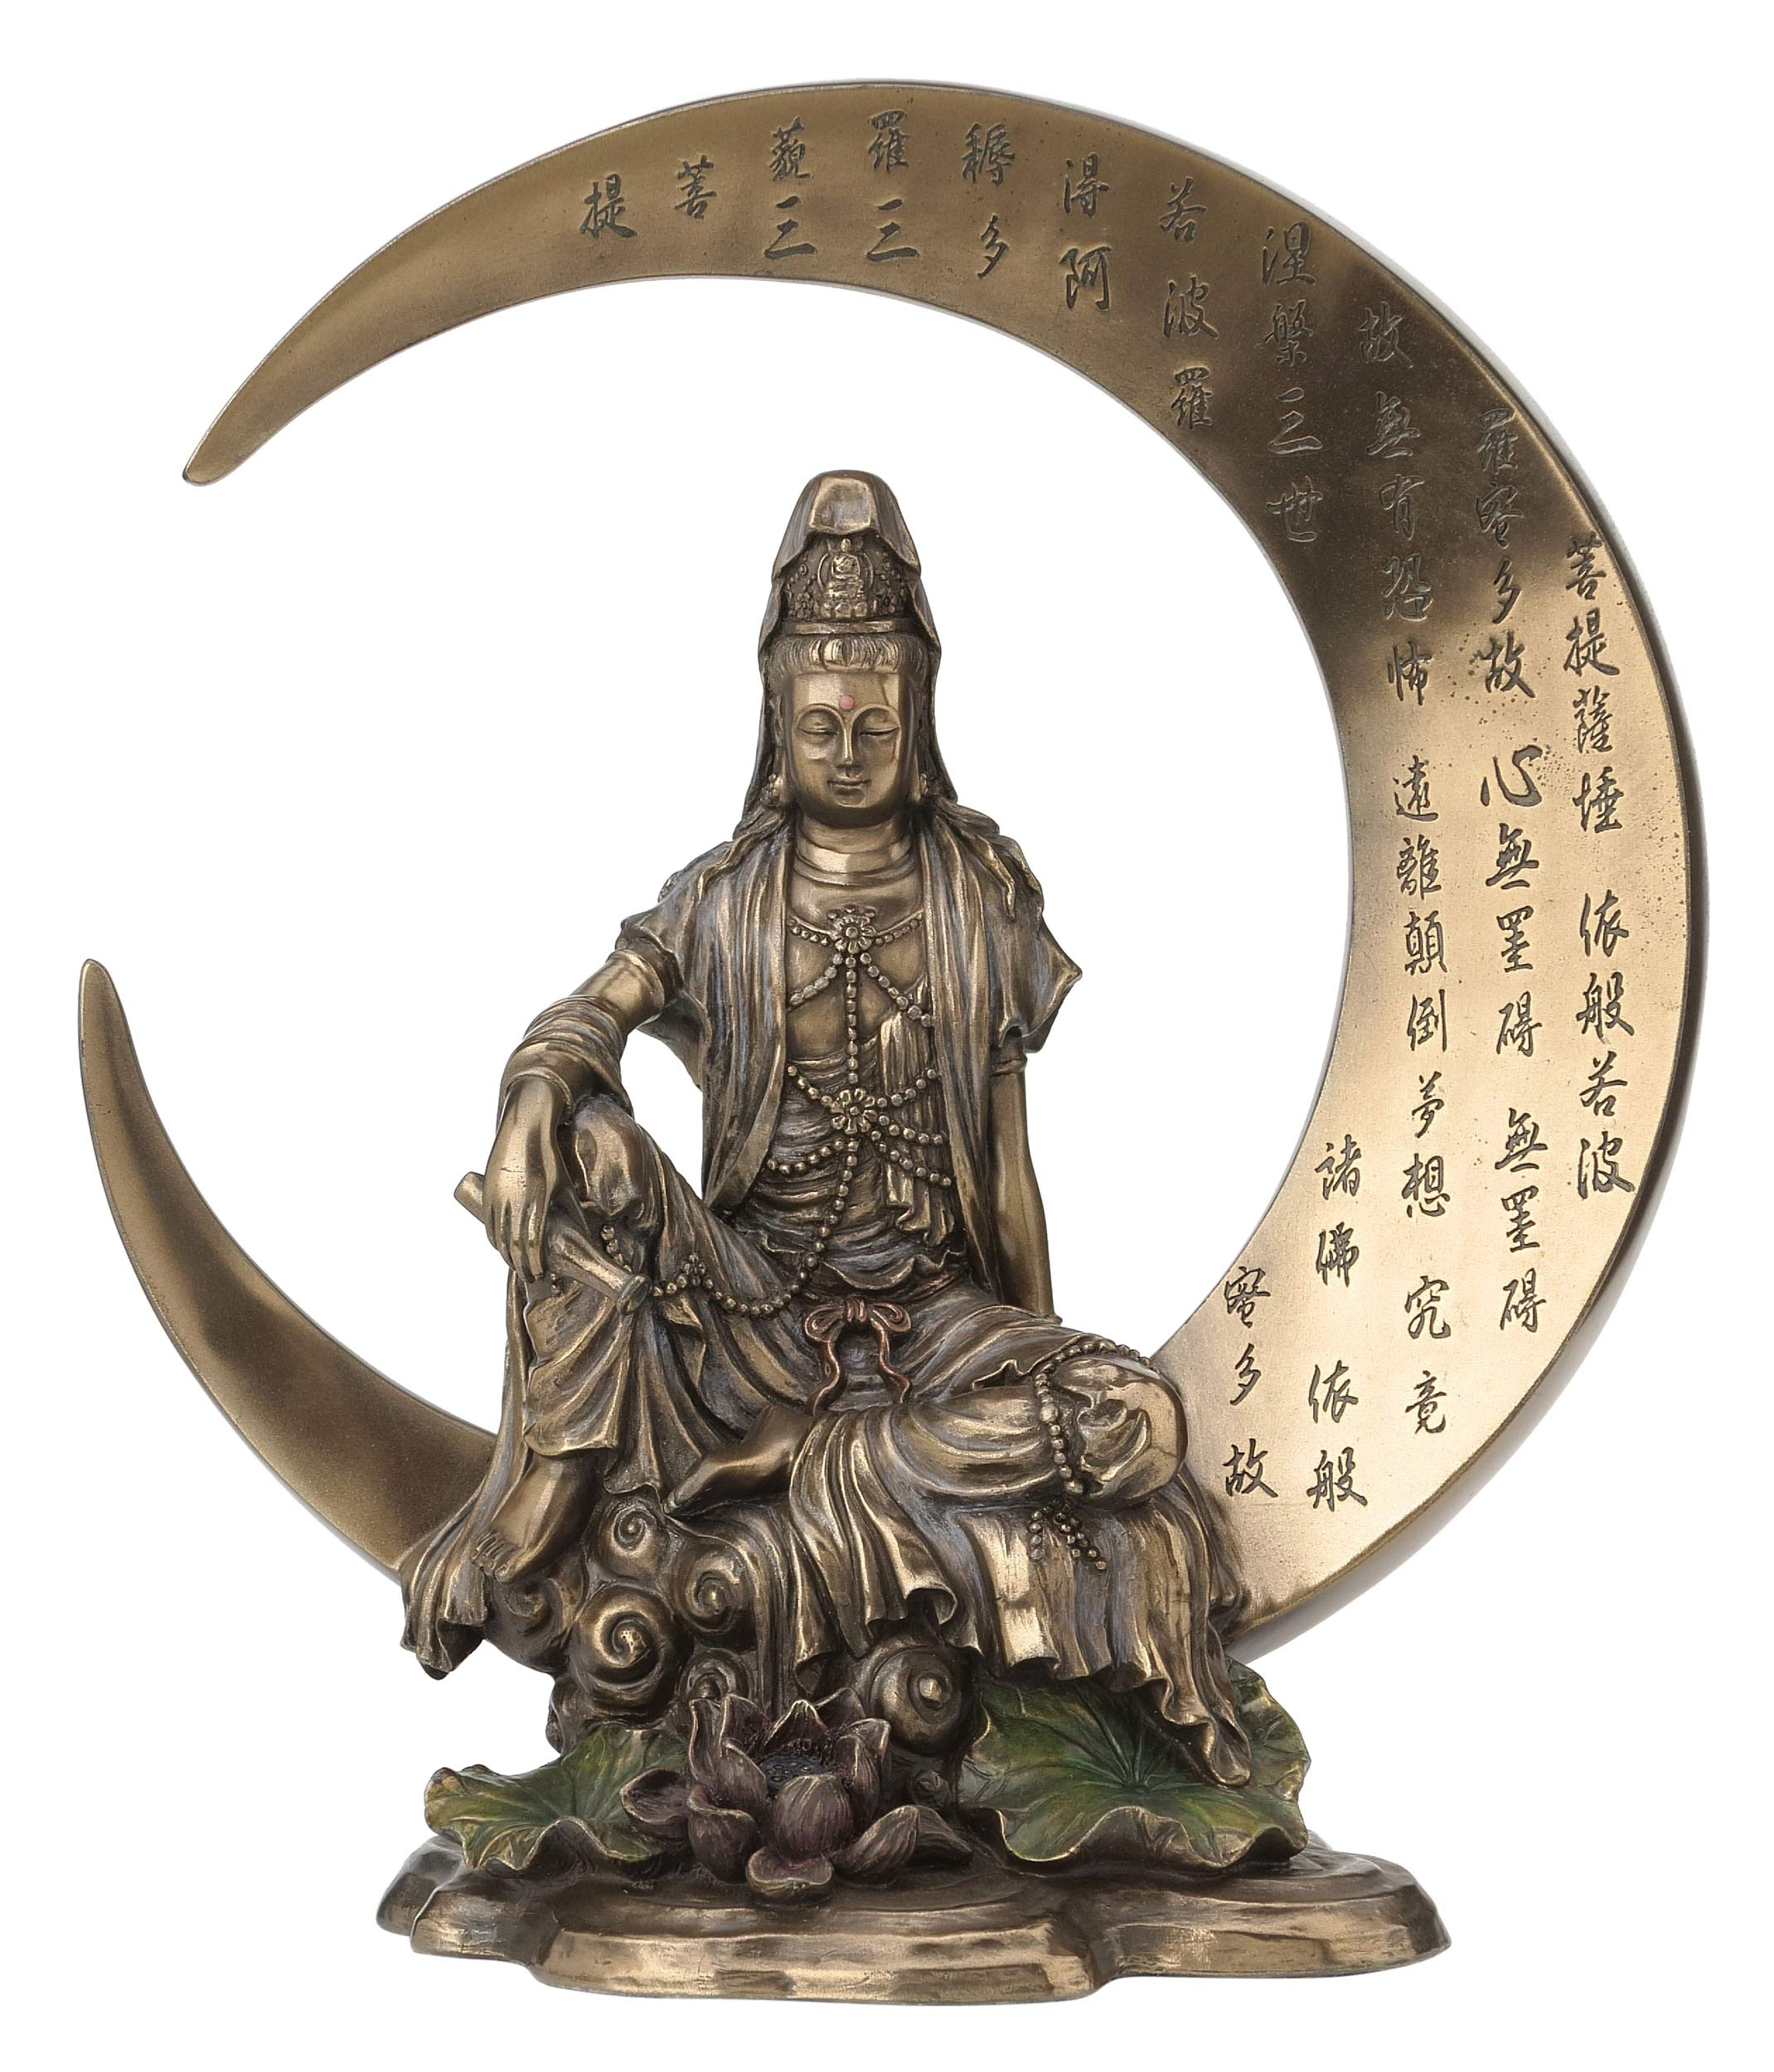 Guan Yin Sitting on Crescent Moon with Heart Sutra Statue Sculpture - Bodhisattva by JFSM INC